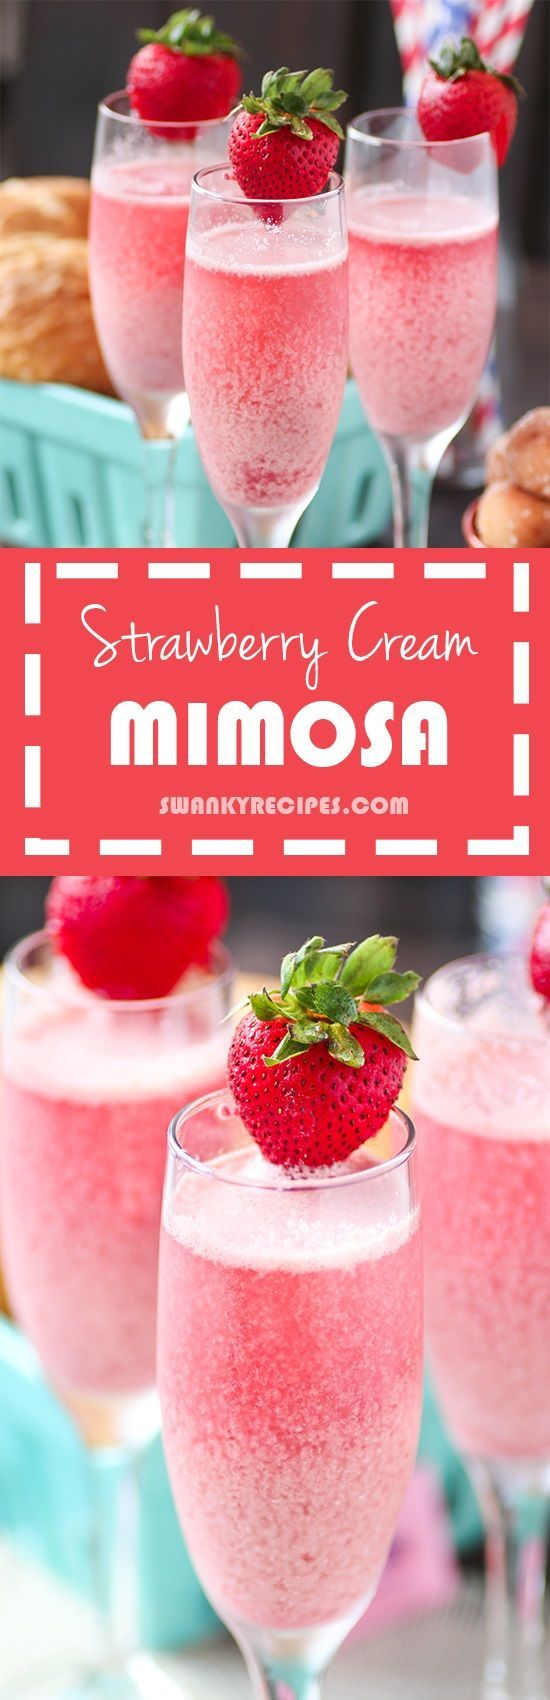 Strawberry Cream Mimoas - Perfect for brunch or holidays http://www.swankyrecipes.com #mimosa #brunch #strawberry